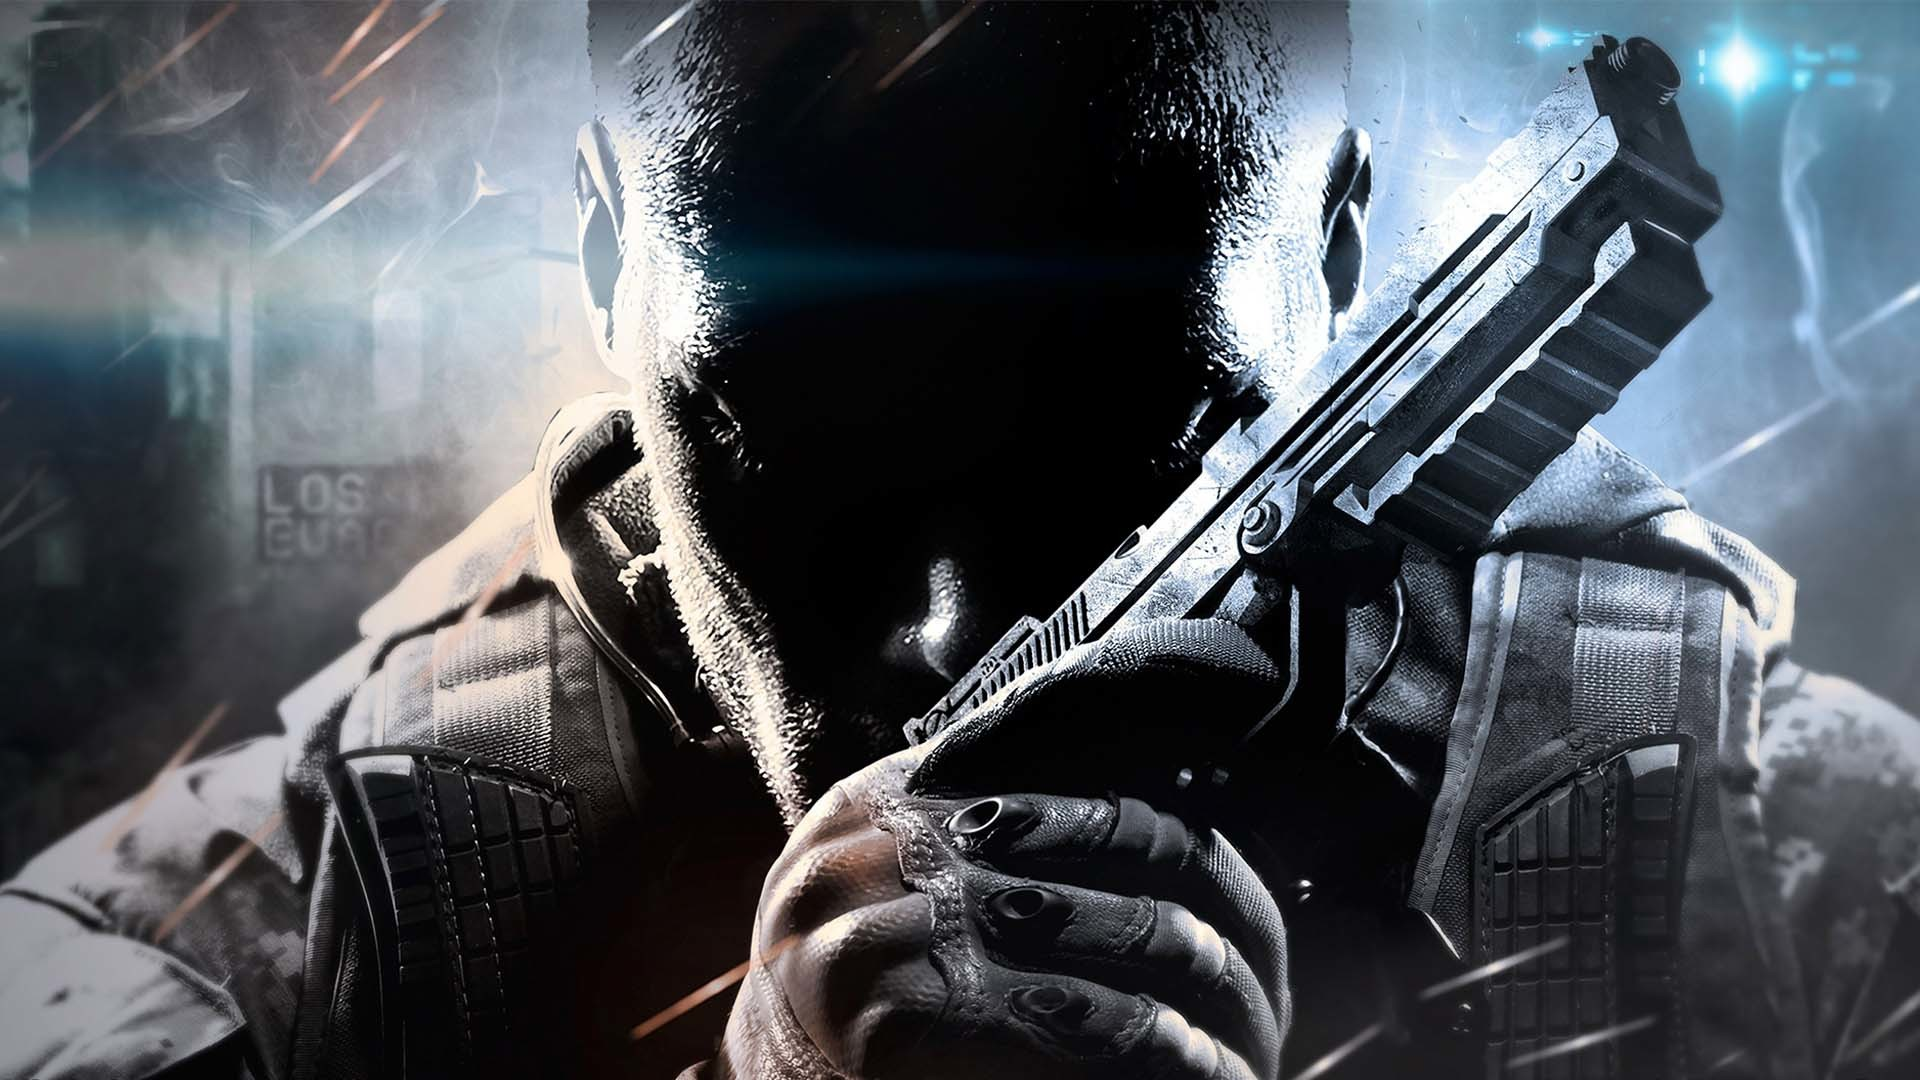 … call of duty wallpapers hd wallpaper cave; games …